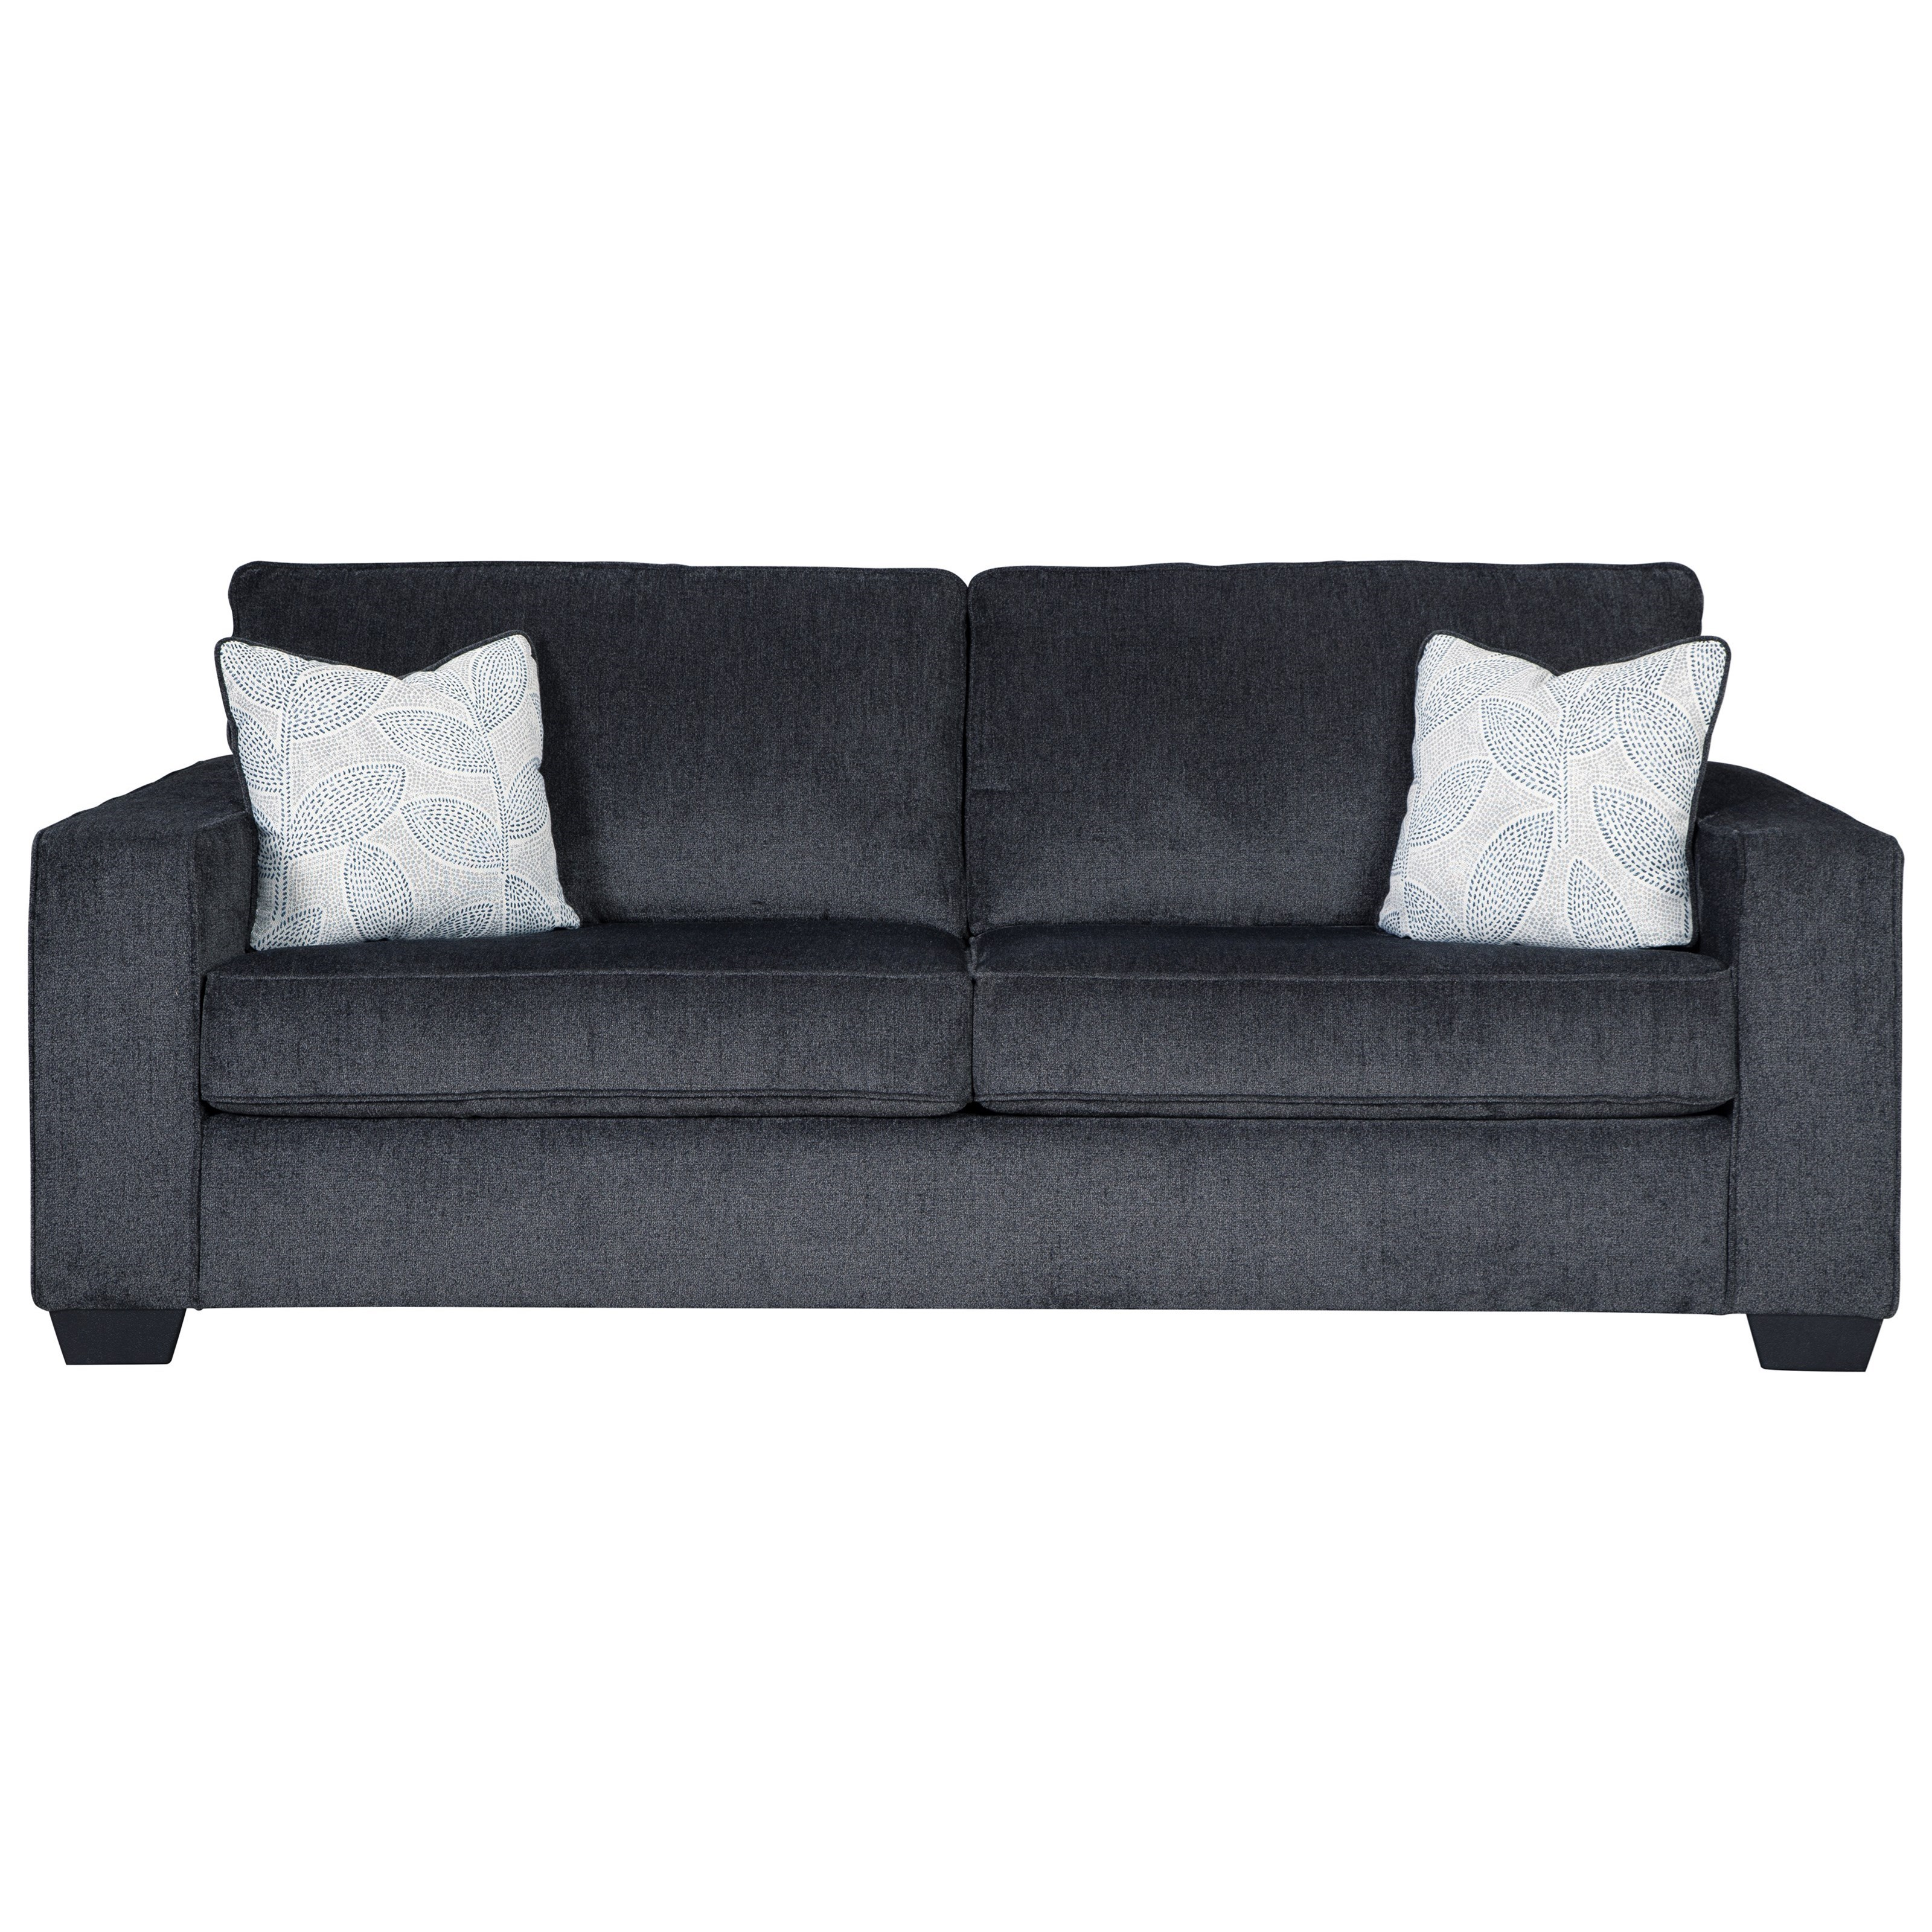 Altari Queen Sofa Sleeper by Signature Design by Ashley at Catalog Outlet